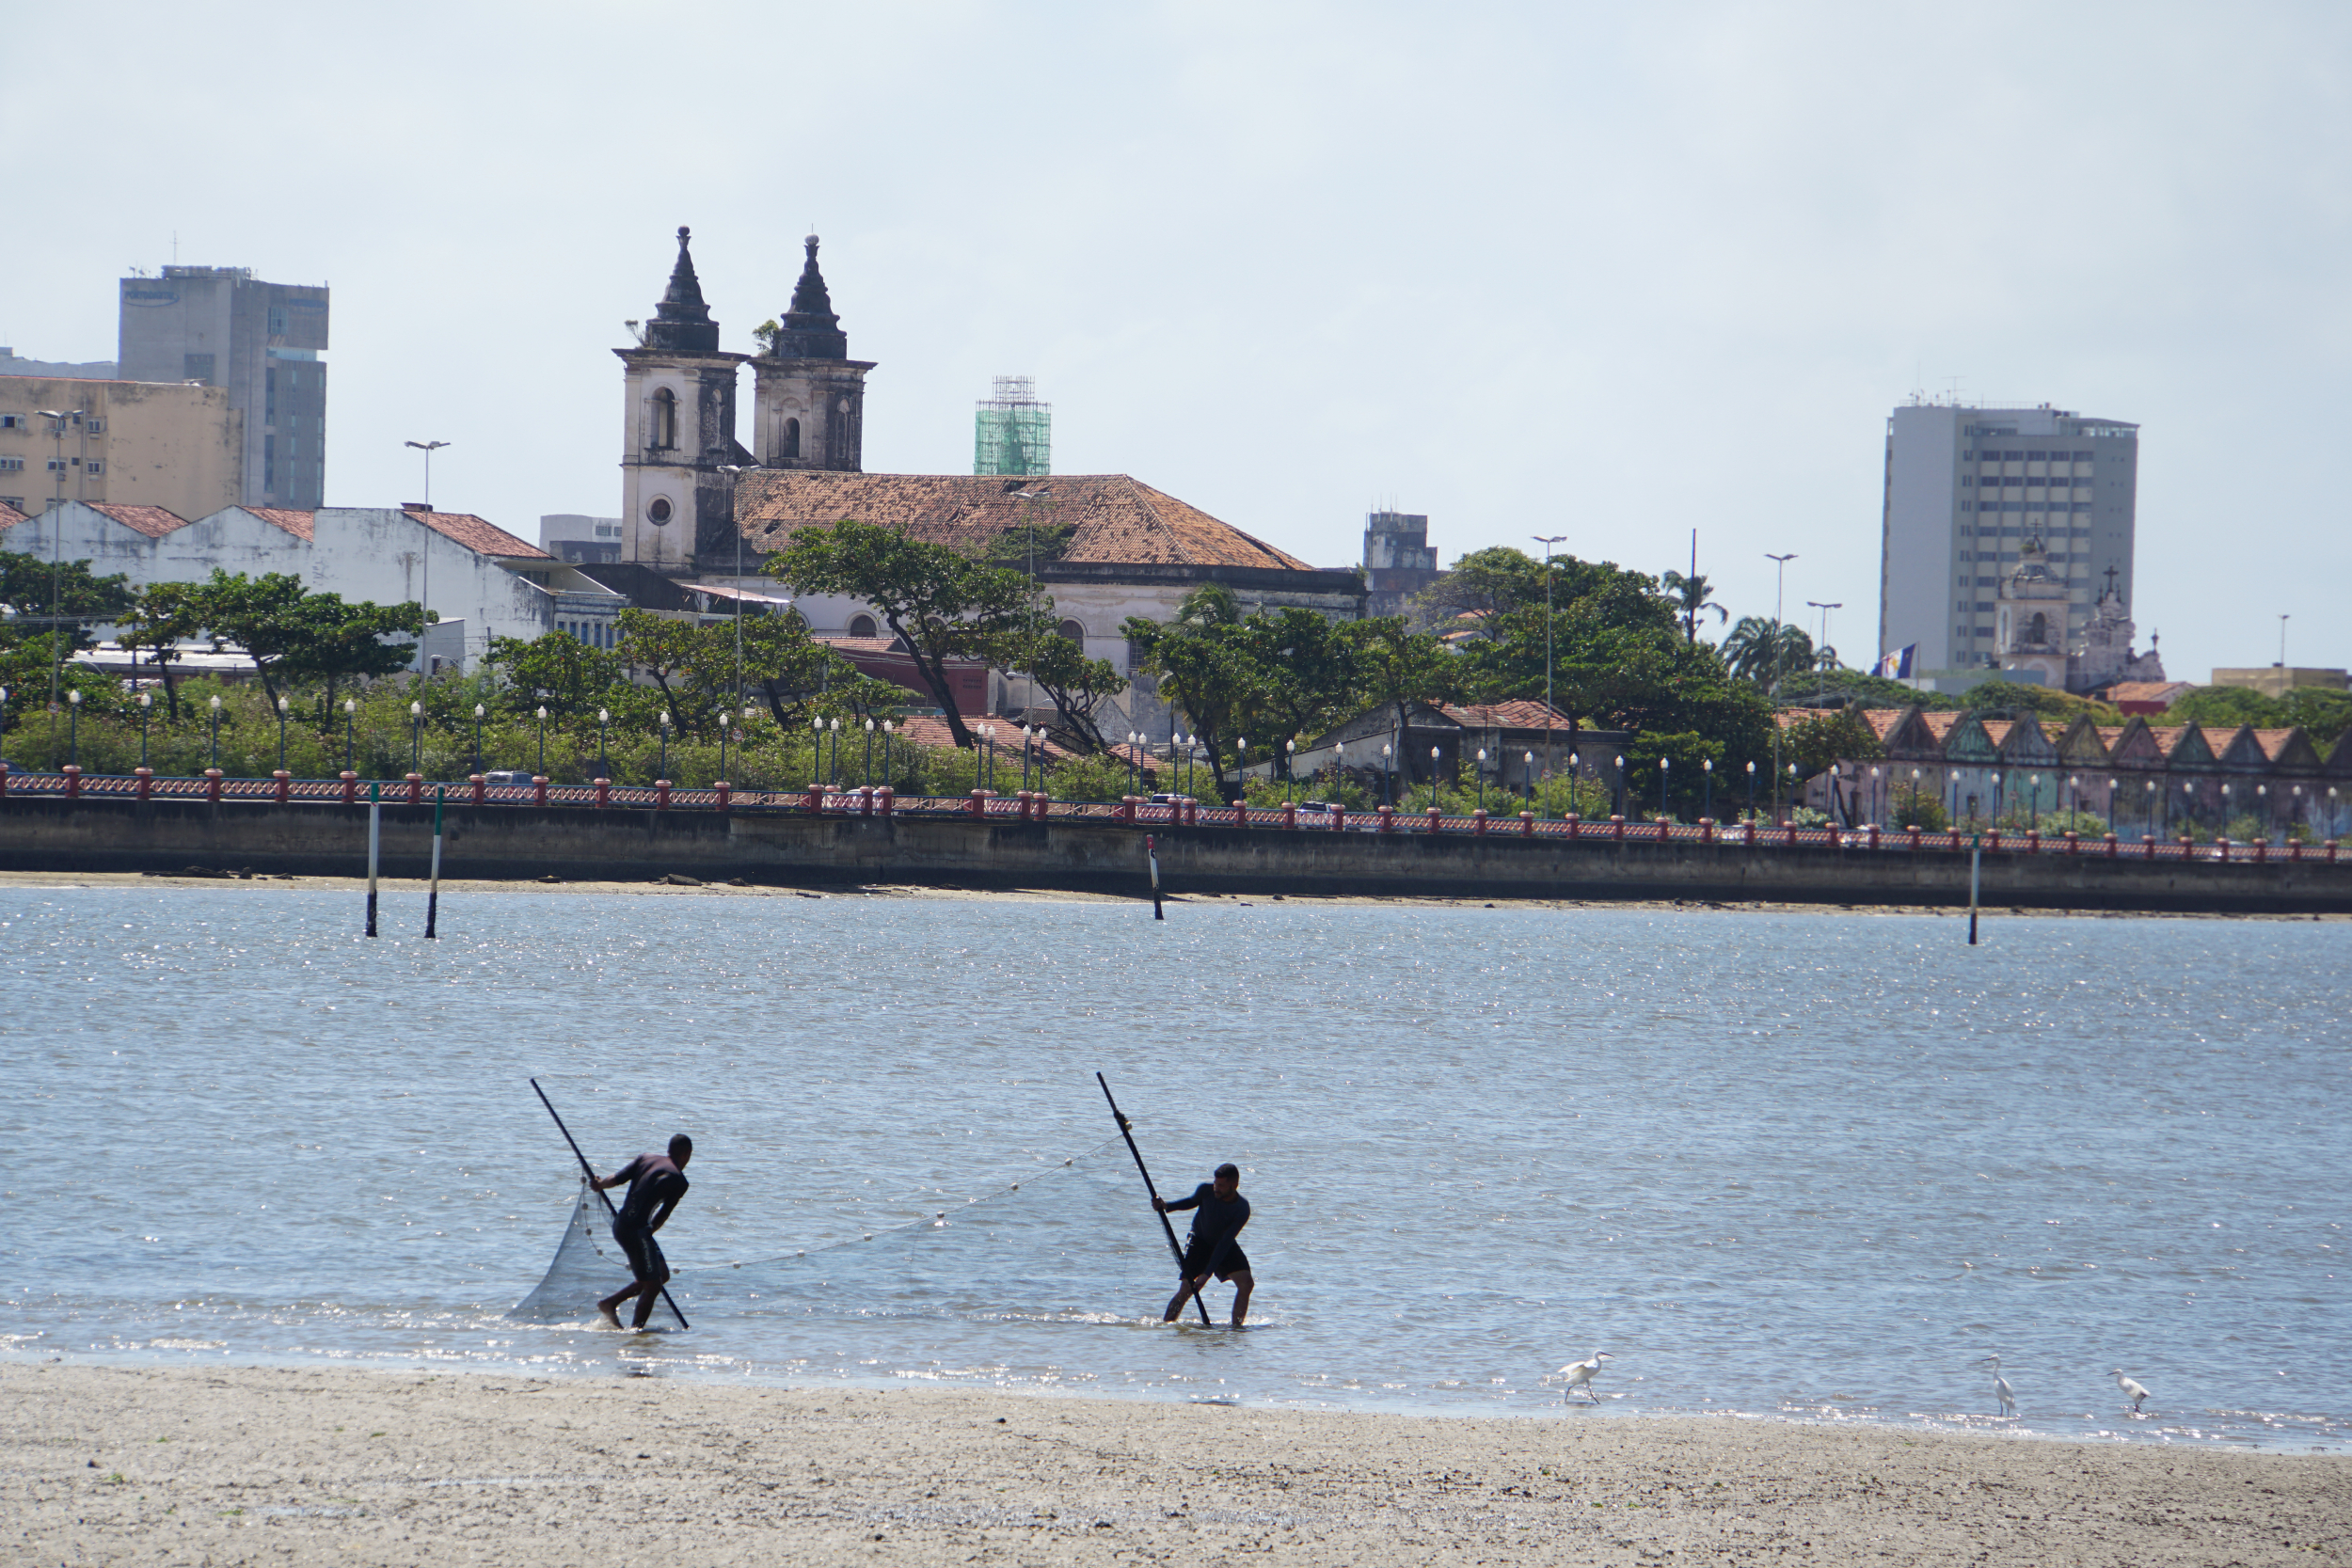 2. Fishing at low tide in Recife